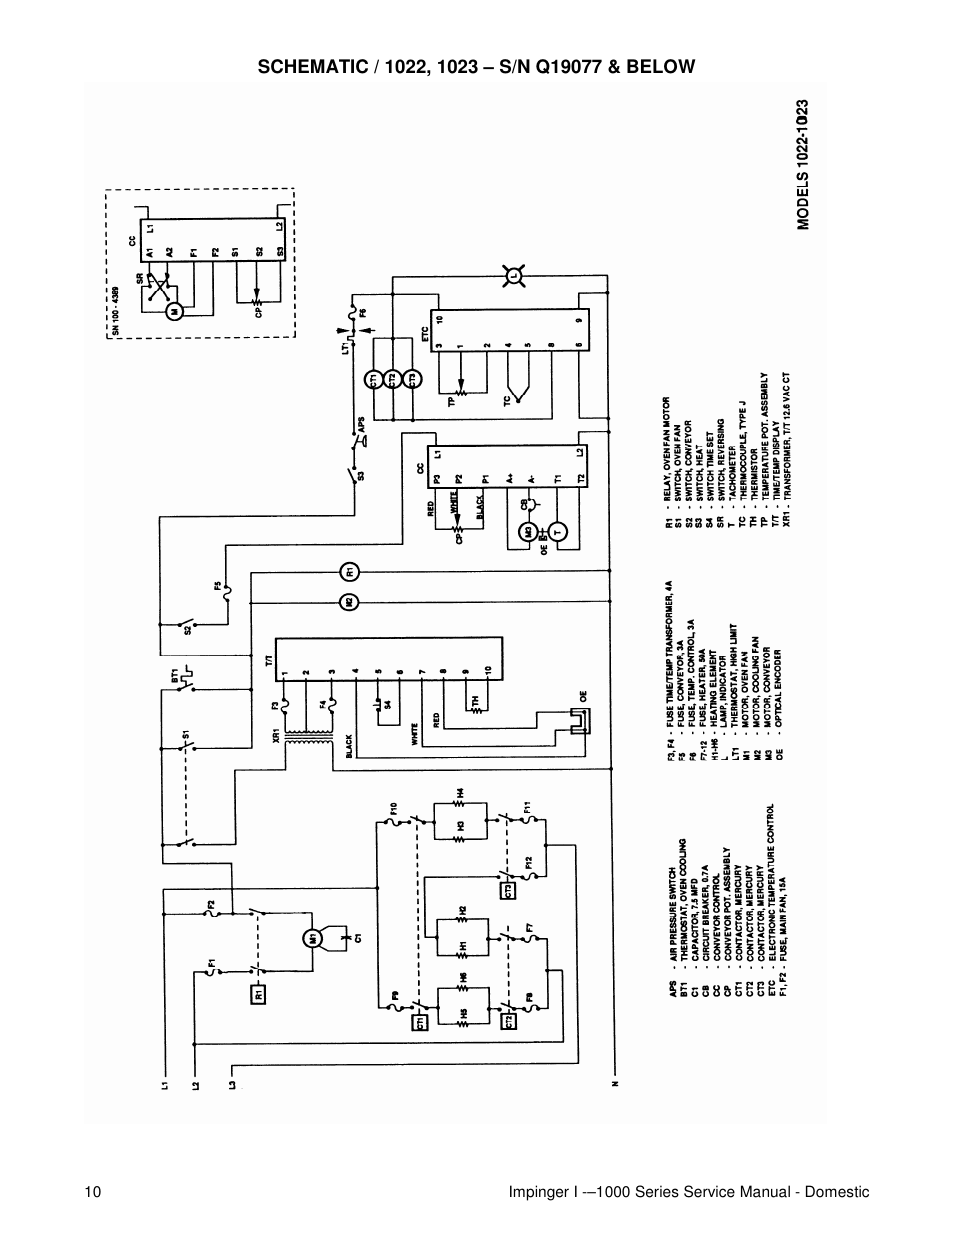 Lincoln Impinger Wiring Diagram Library 1116 Impringer Conveyor Oven 1000 User Manual Page 10 92 Also For